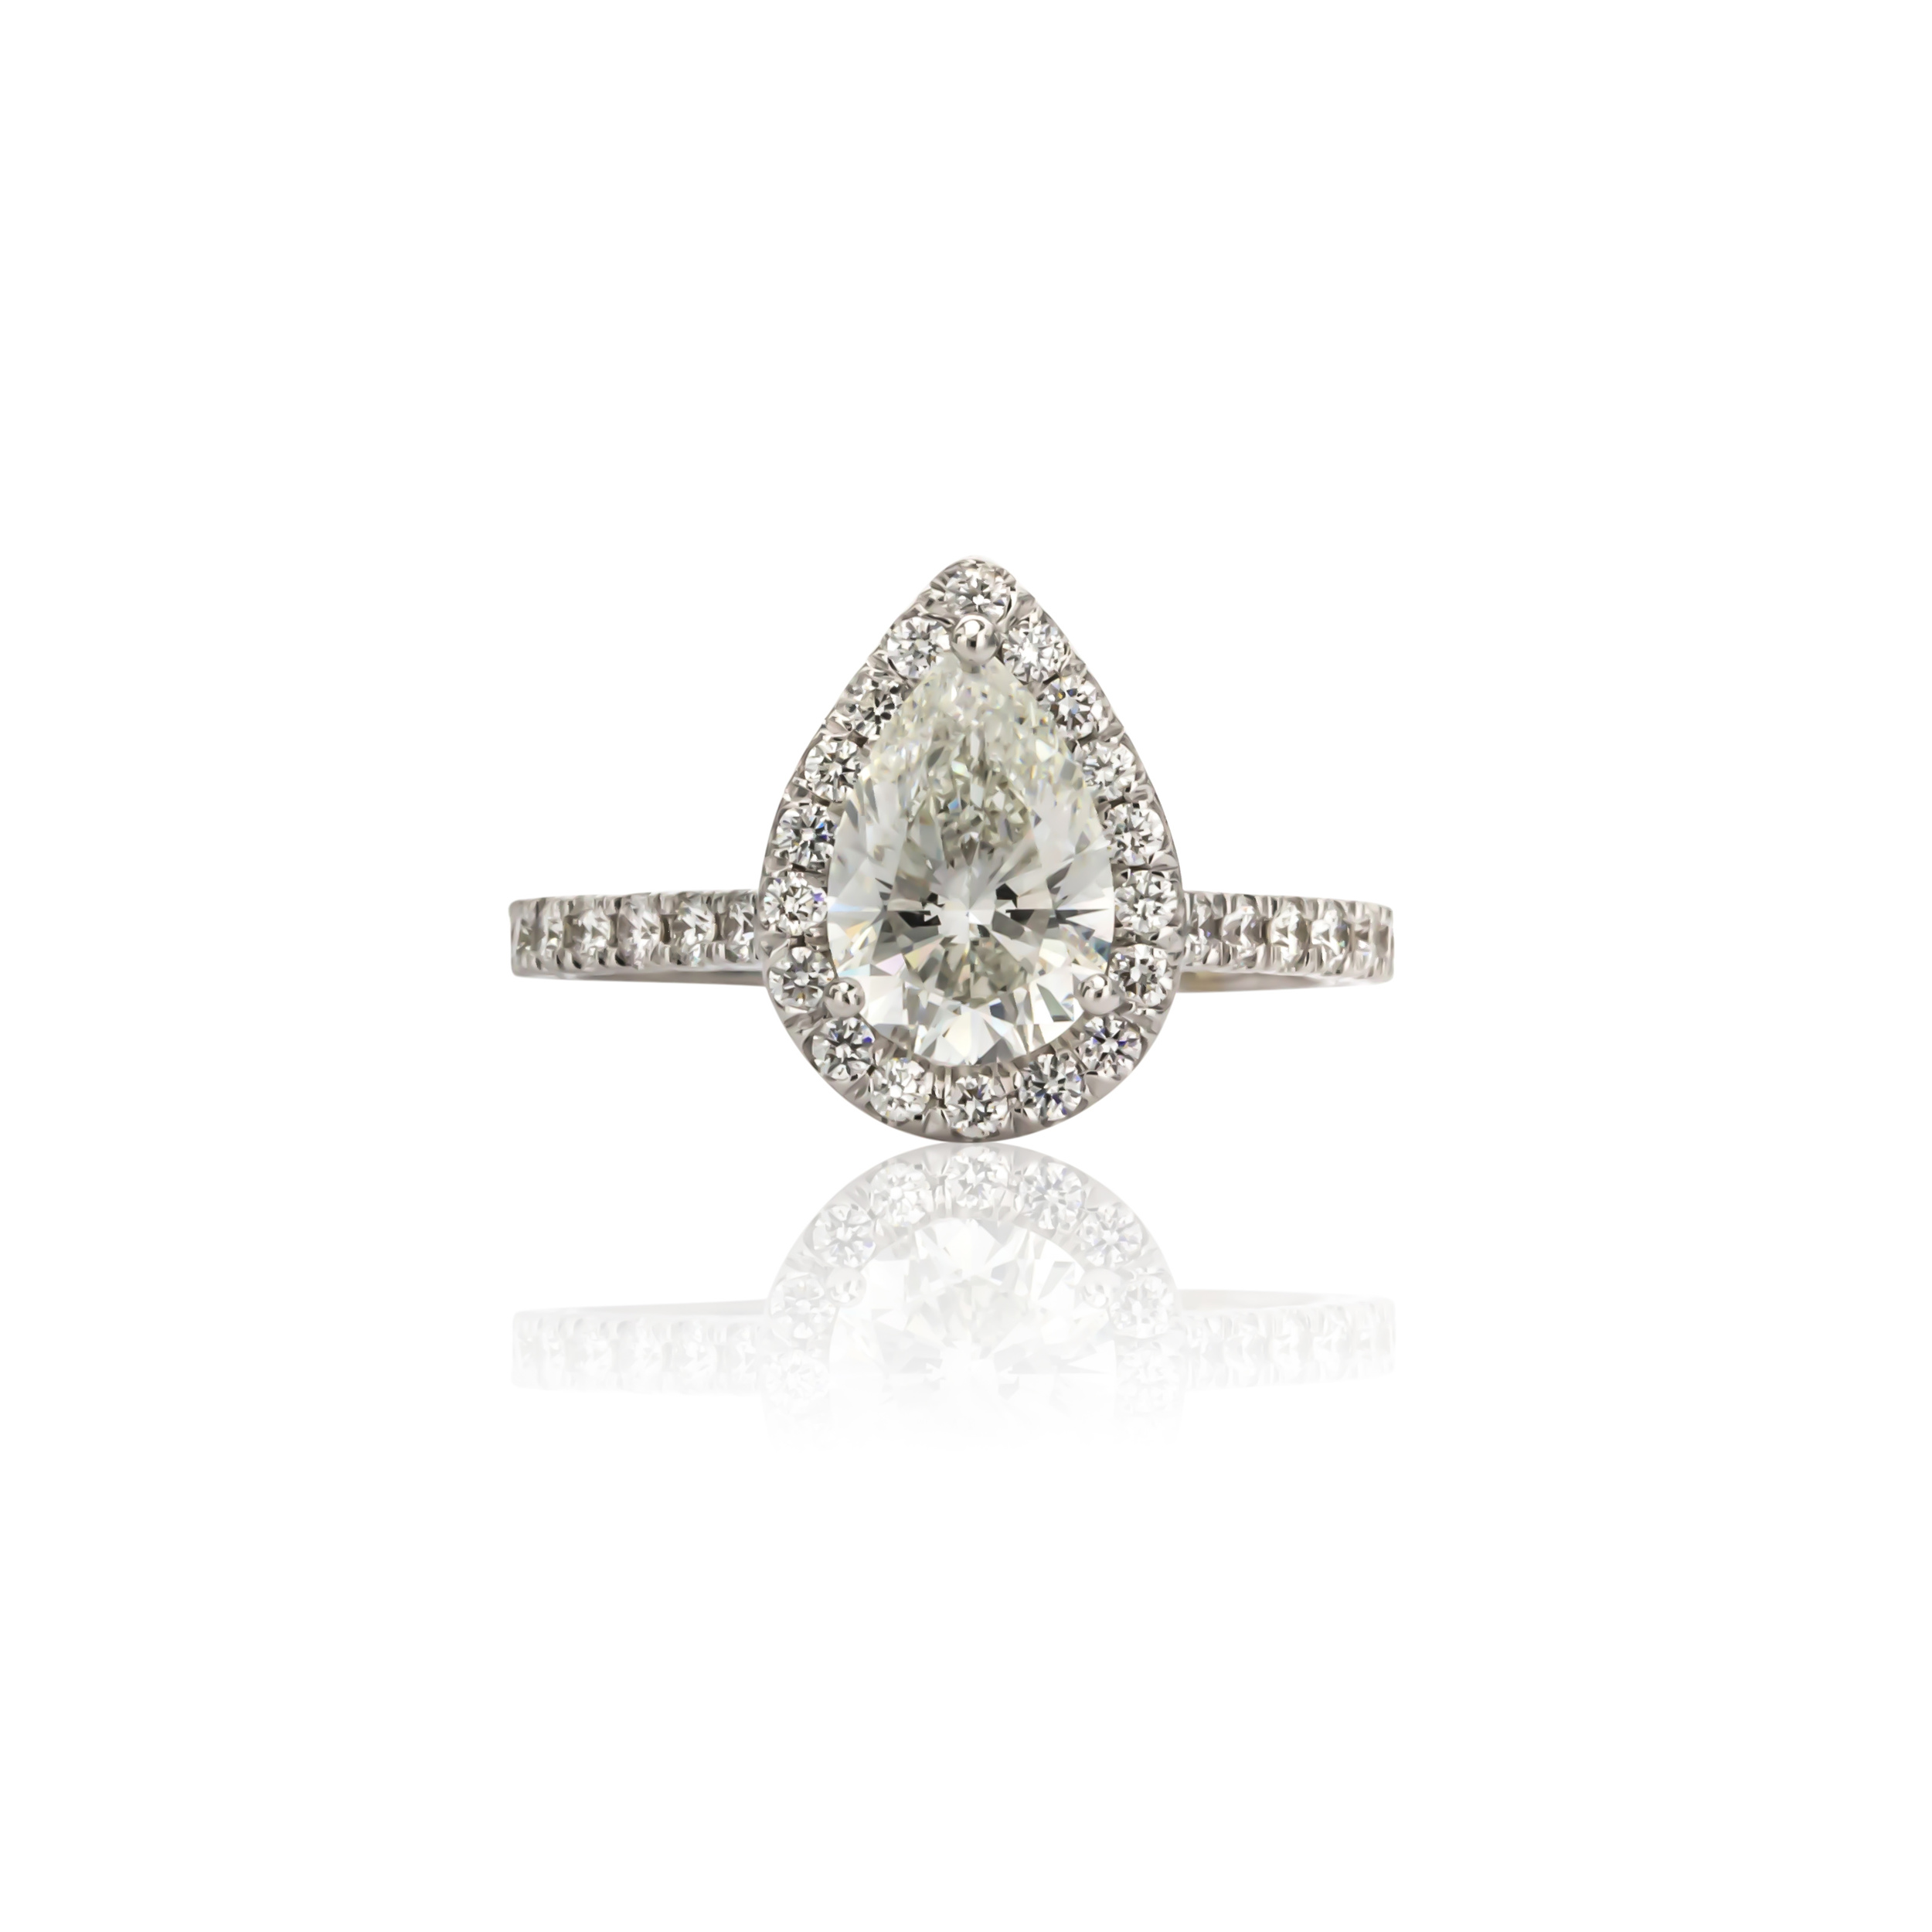 CUSTOM PEAR SHAPED DIAMOND HALO ENGAGEMENT RING